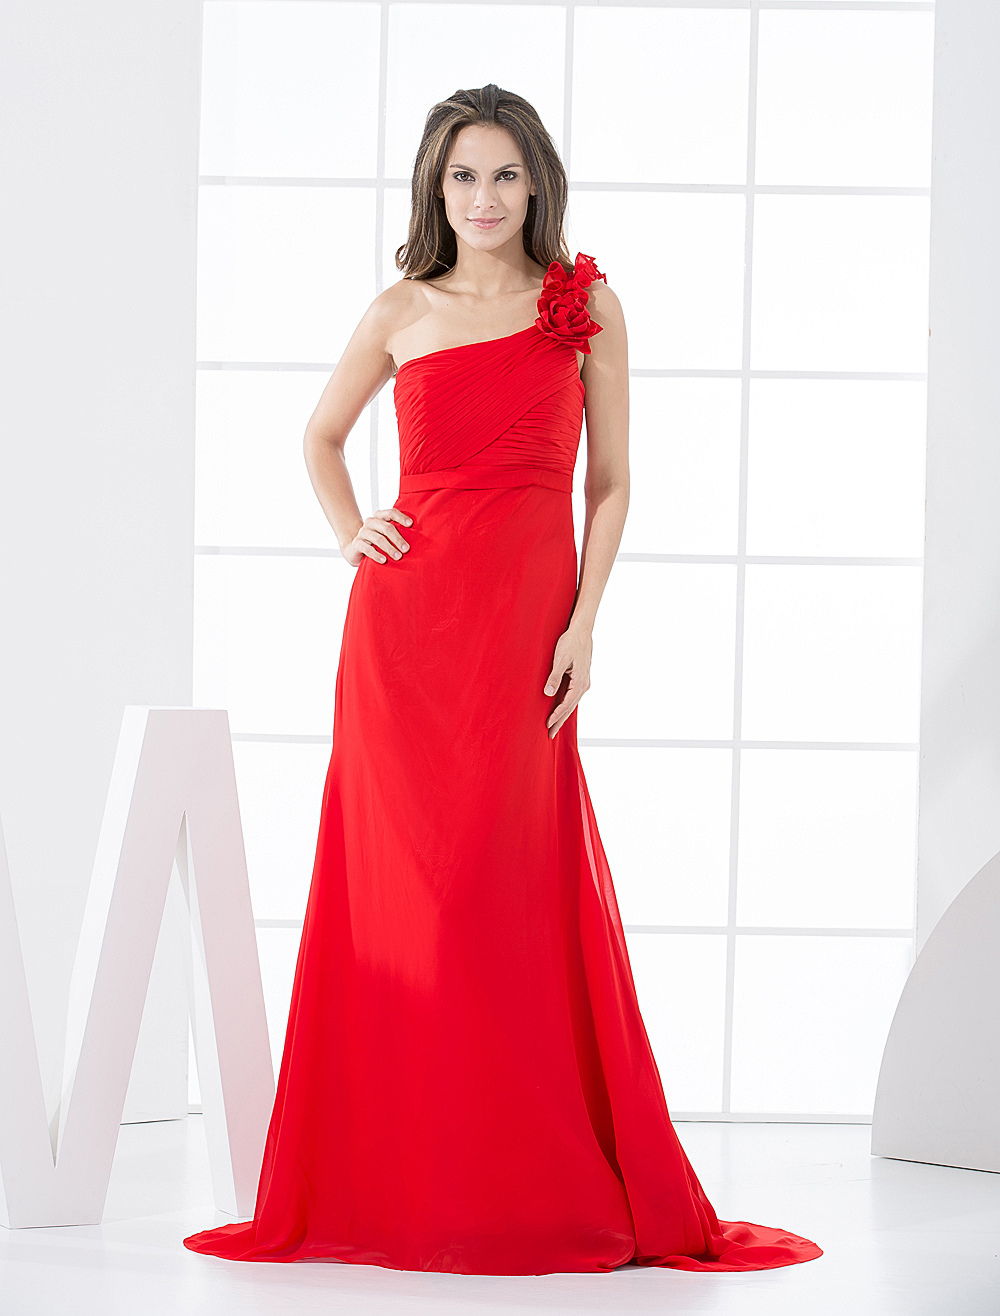 A-line Red Chiffon One Shoulder Bridesmaid Dress With Flowers